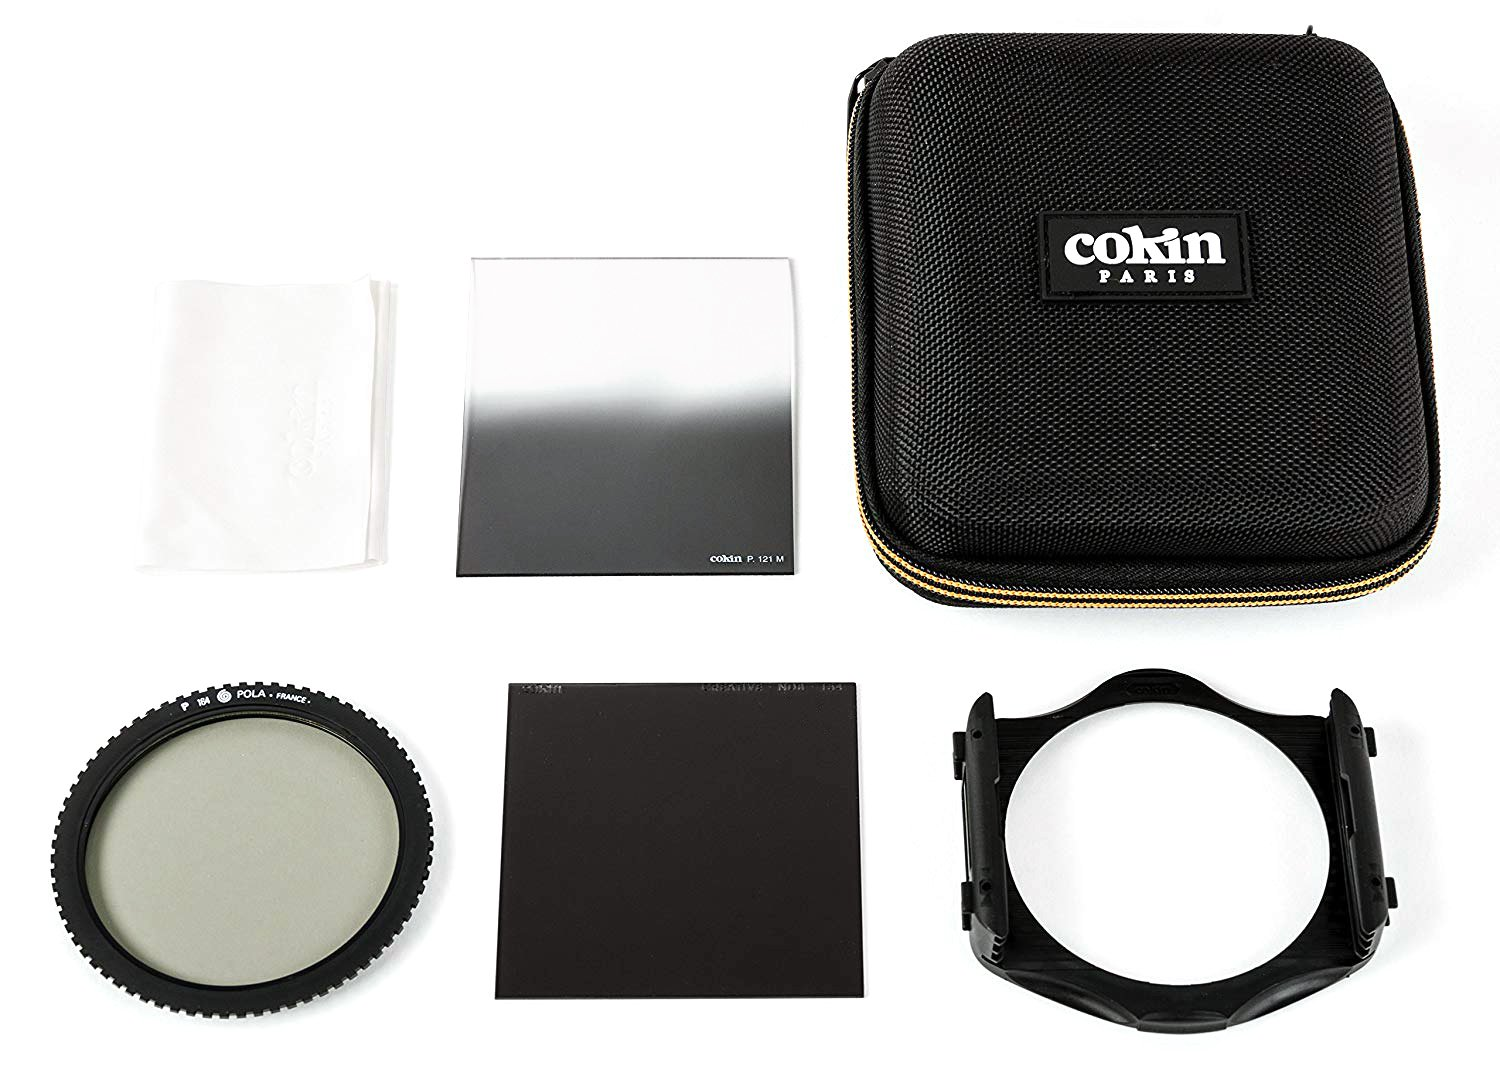 Cokin Square Filter Traveller Creative Kit - Includes M (P) Series Filter Holder, Circular Polarizer (P164), ND8 3-Stop (P154), ND4 2-Stop Hard (P121M), Filter Wallet (M3068) by Cokin